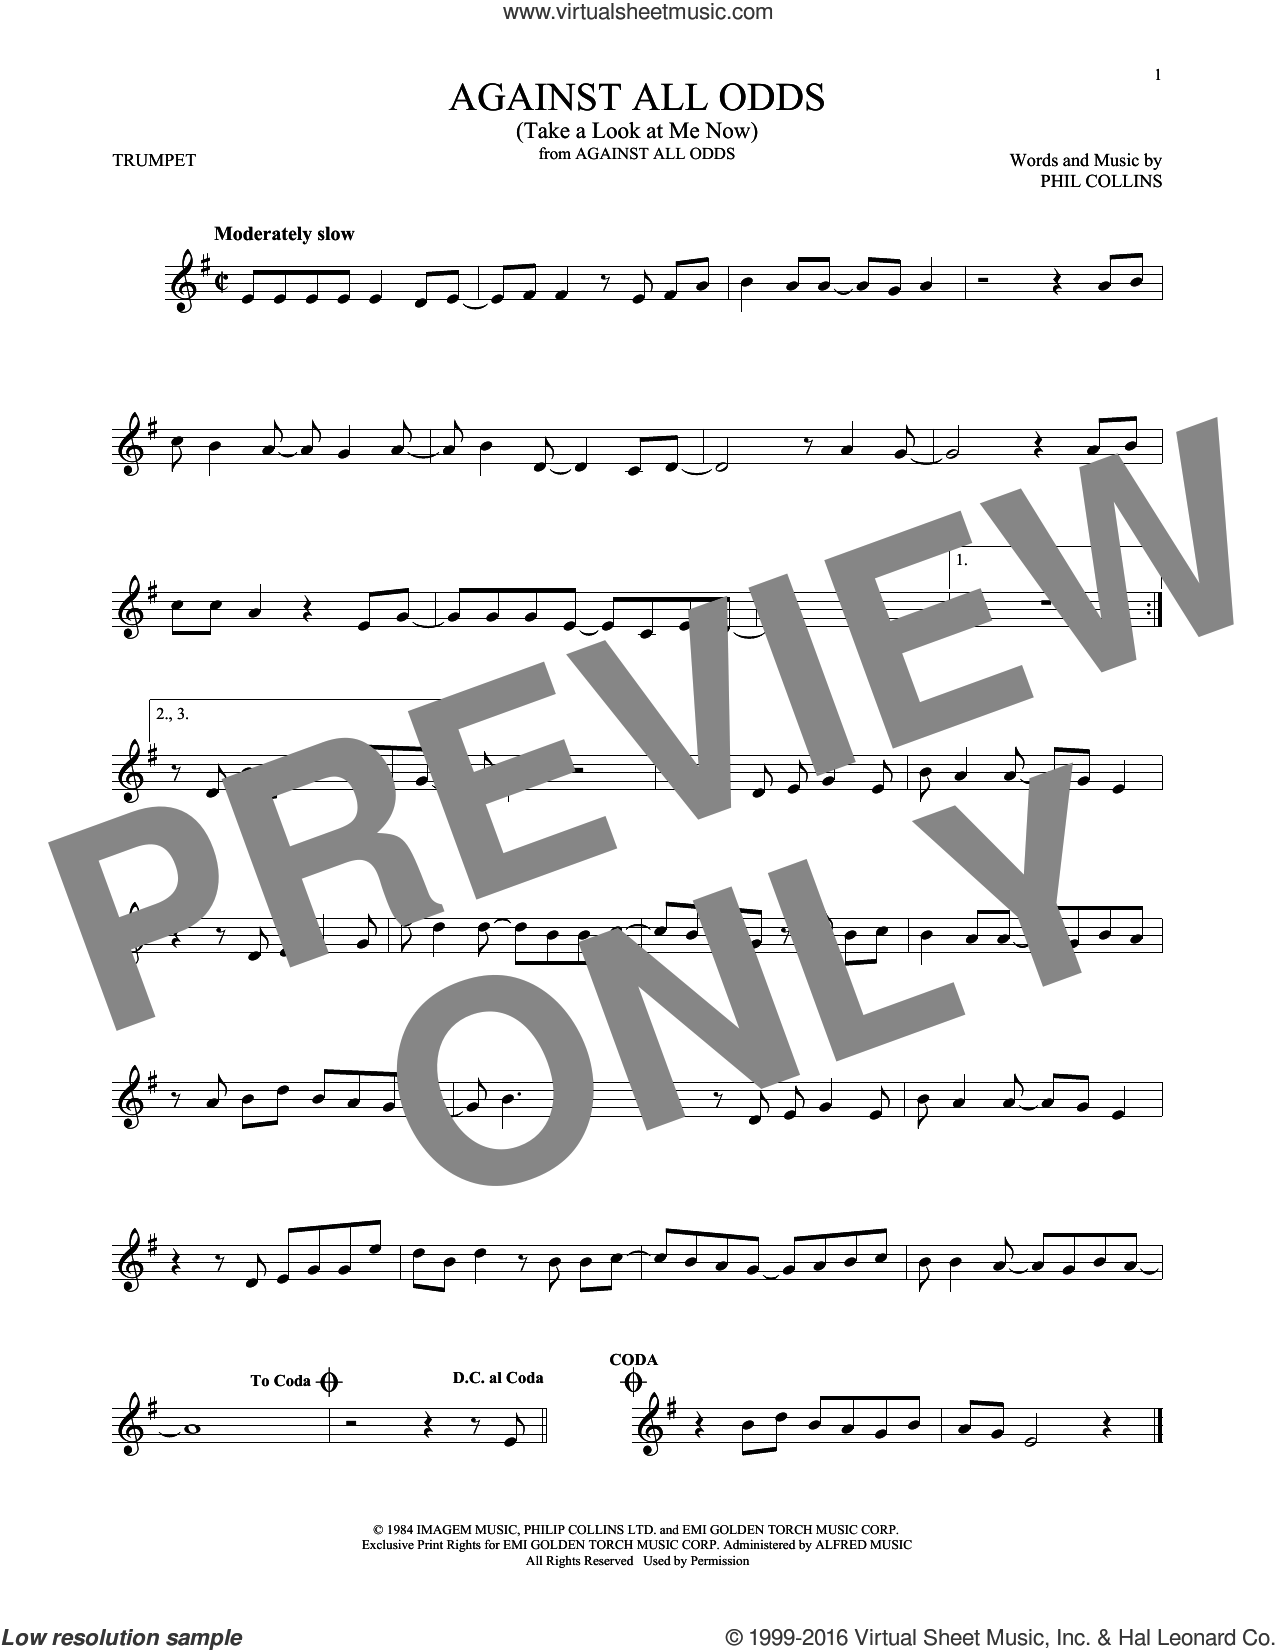 Against All Odds (Take A Look At Me Now) sheet music for trumpet solo by Phil Collins. Score Image Preview.